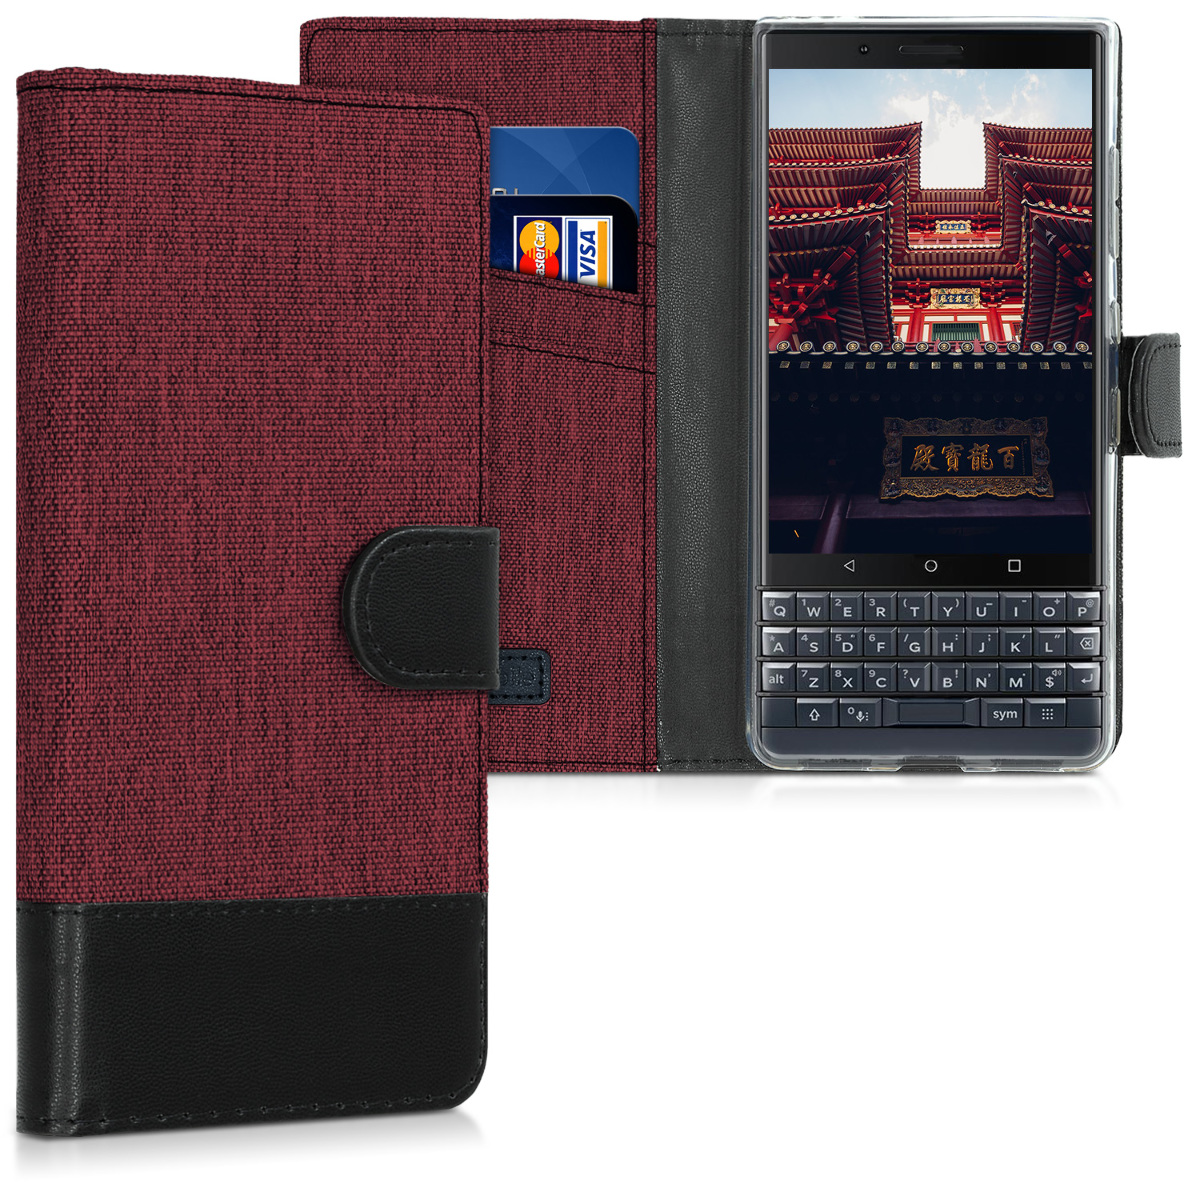 KW Θήκη - Πορτοφόλι Blackberry KEY2 LE (Lite) - Dark Red / Black (46277.20)